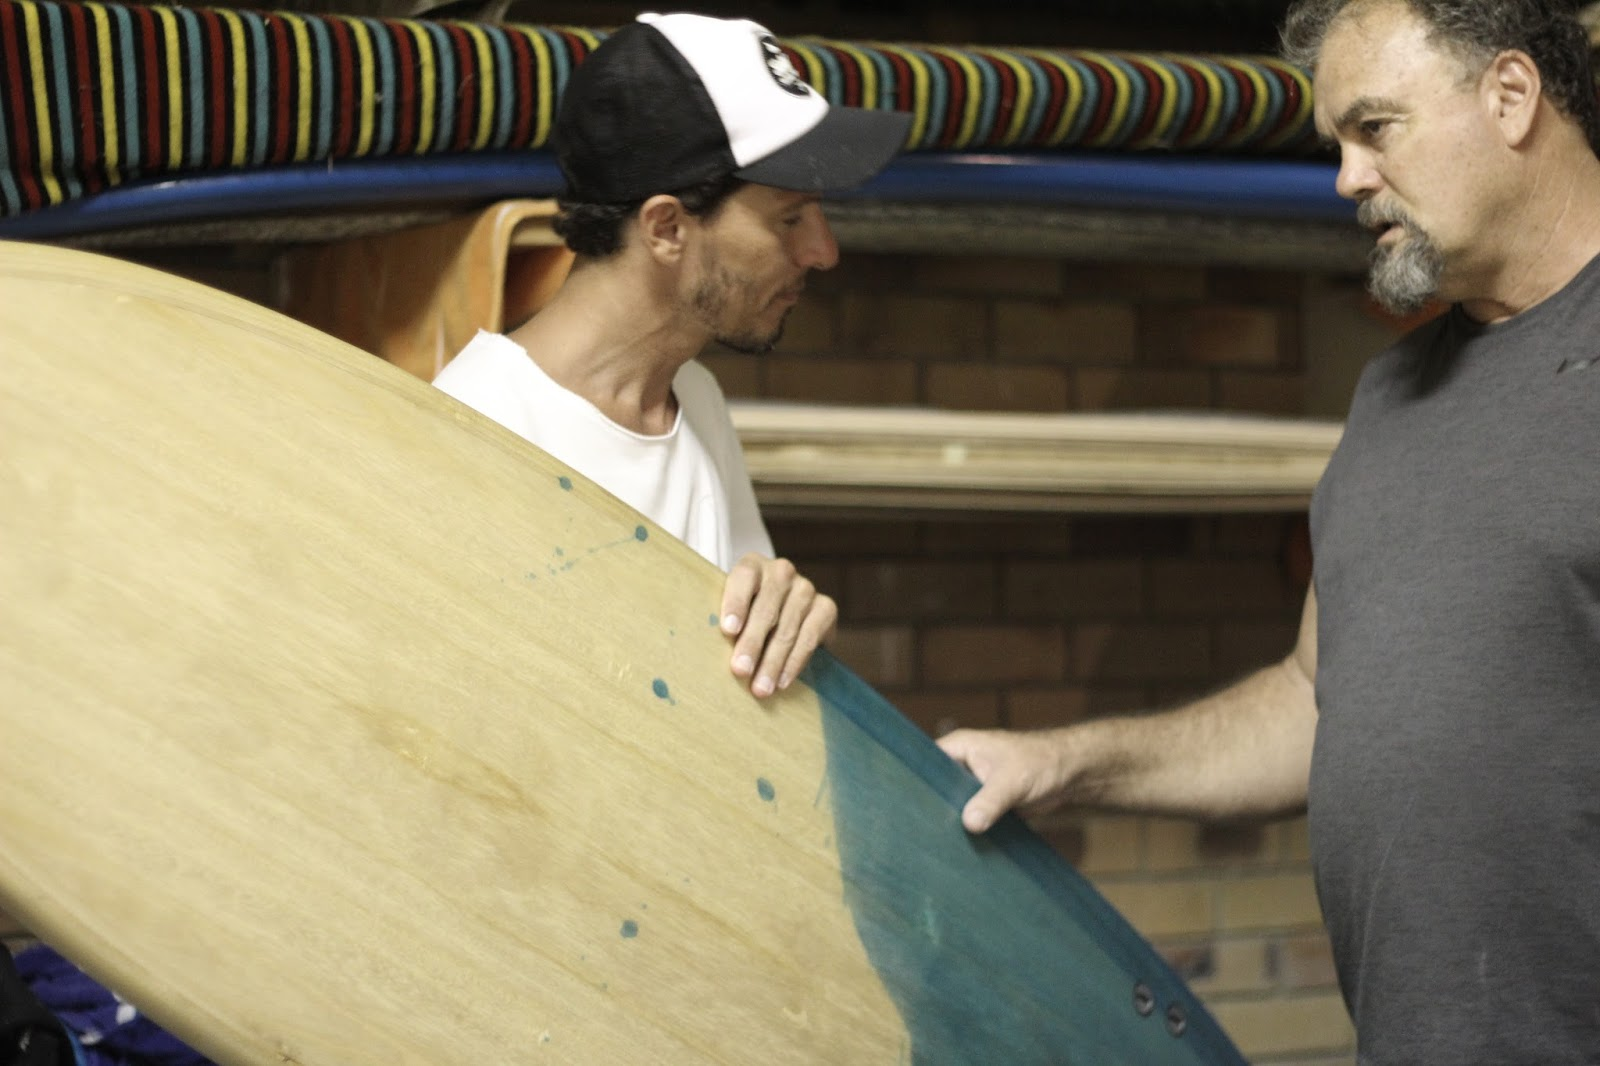 20-03-2016-australia-siebert-surfboards-02